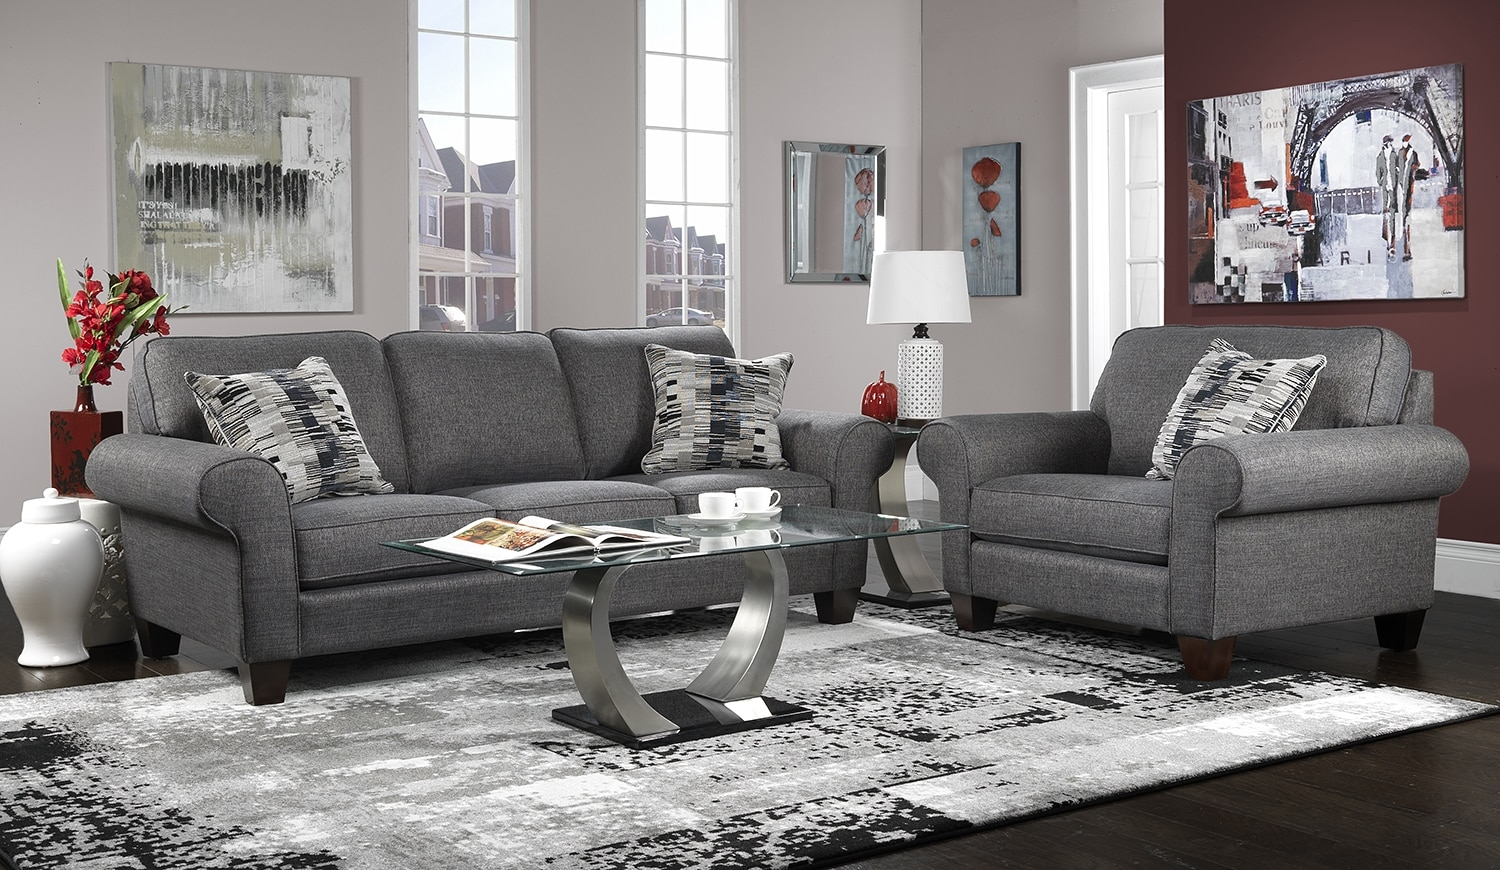 Drake 2 Pc. Living Room Package w/ Chair - Grey